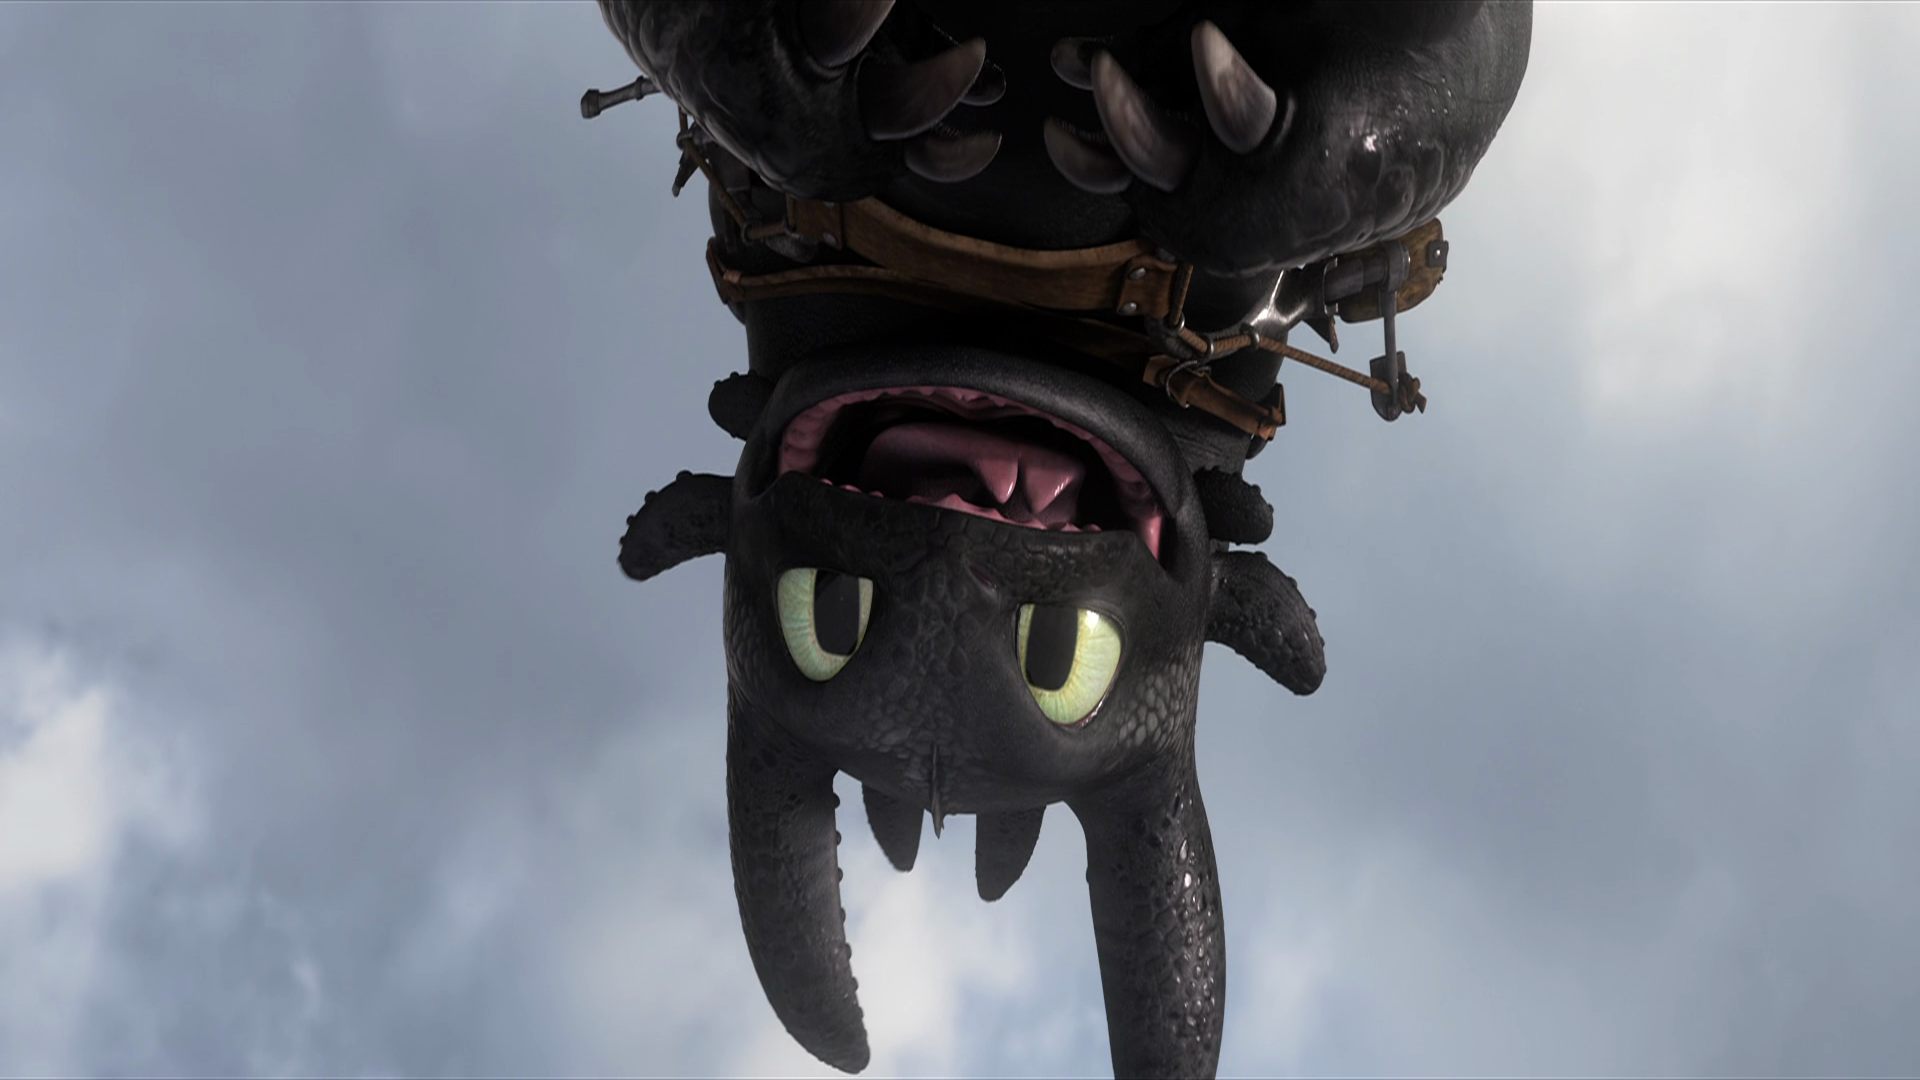 How to Train Your Dragon 2 Computer Wallpapers Desktop 1920x1080